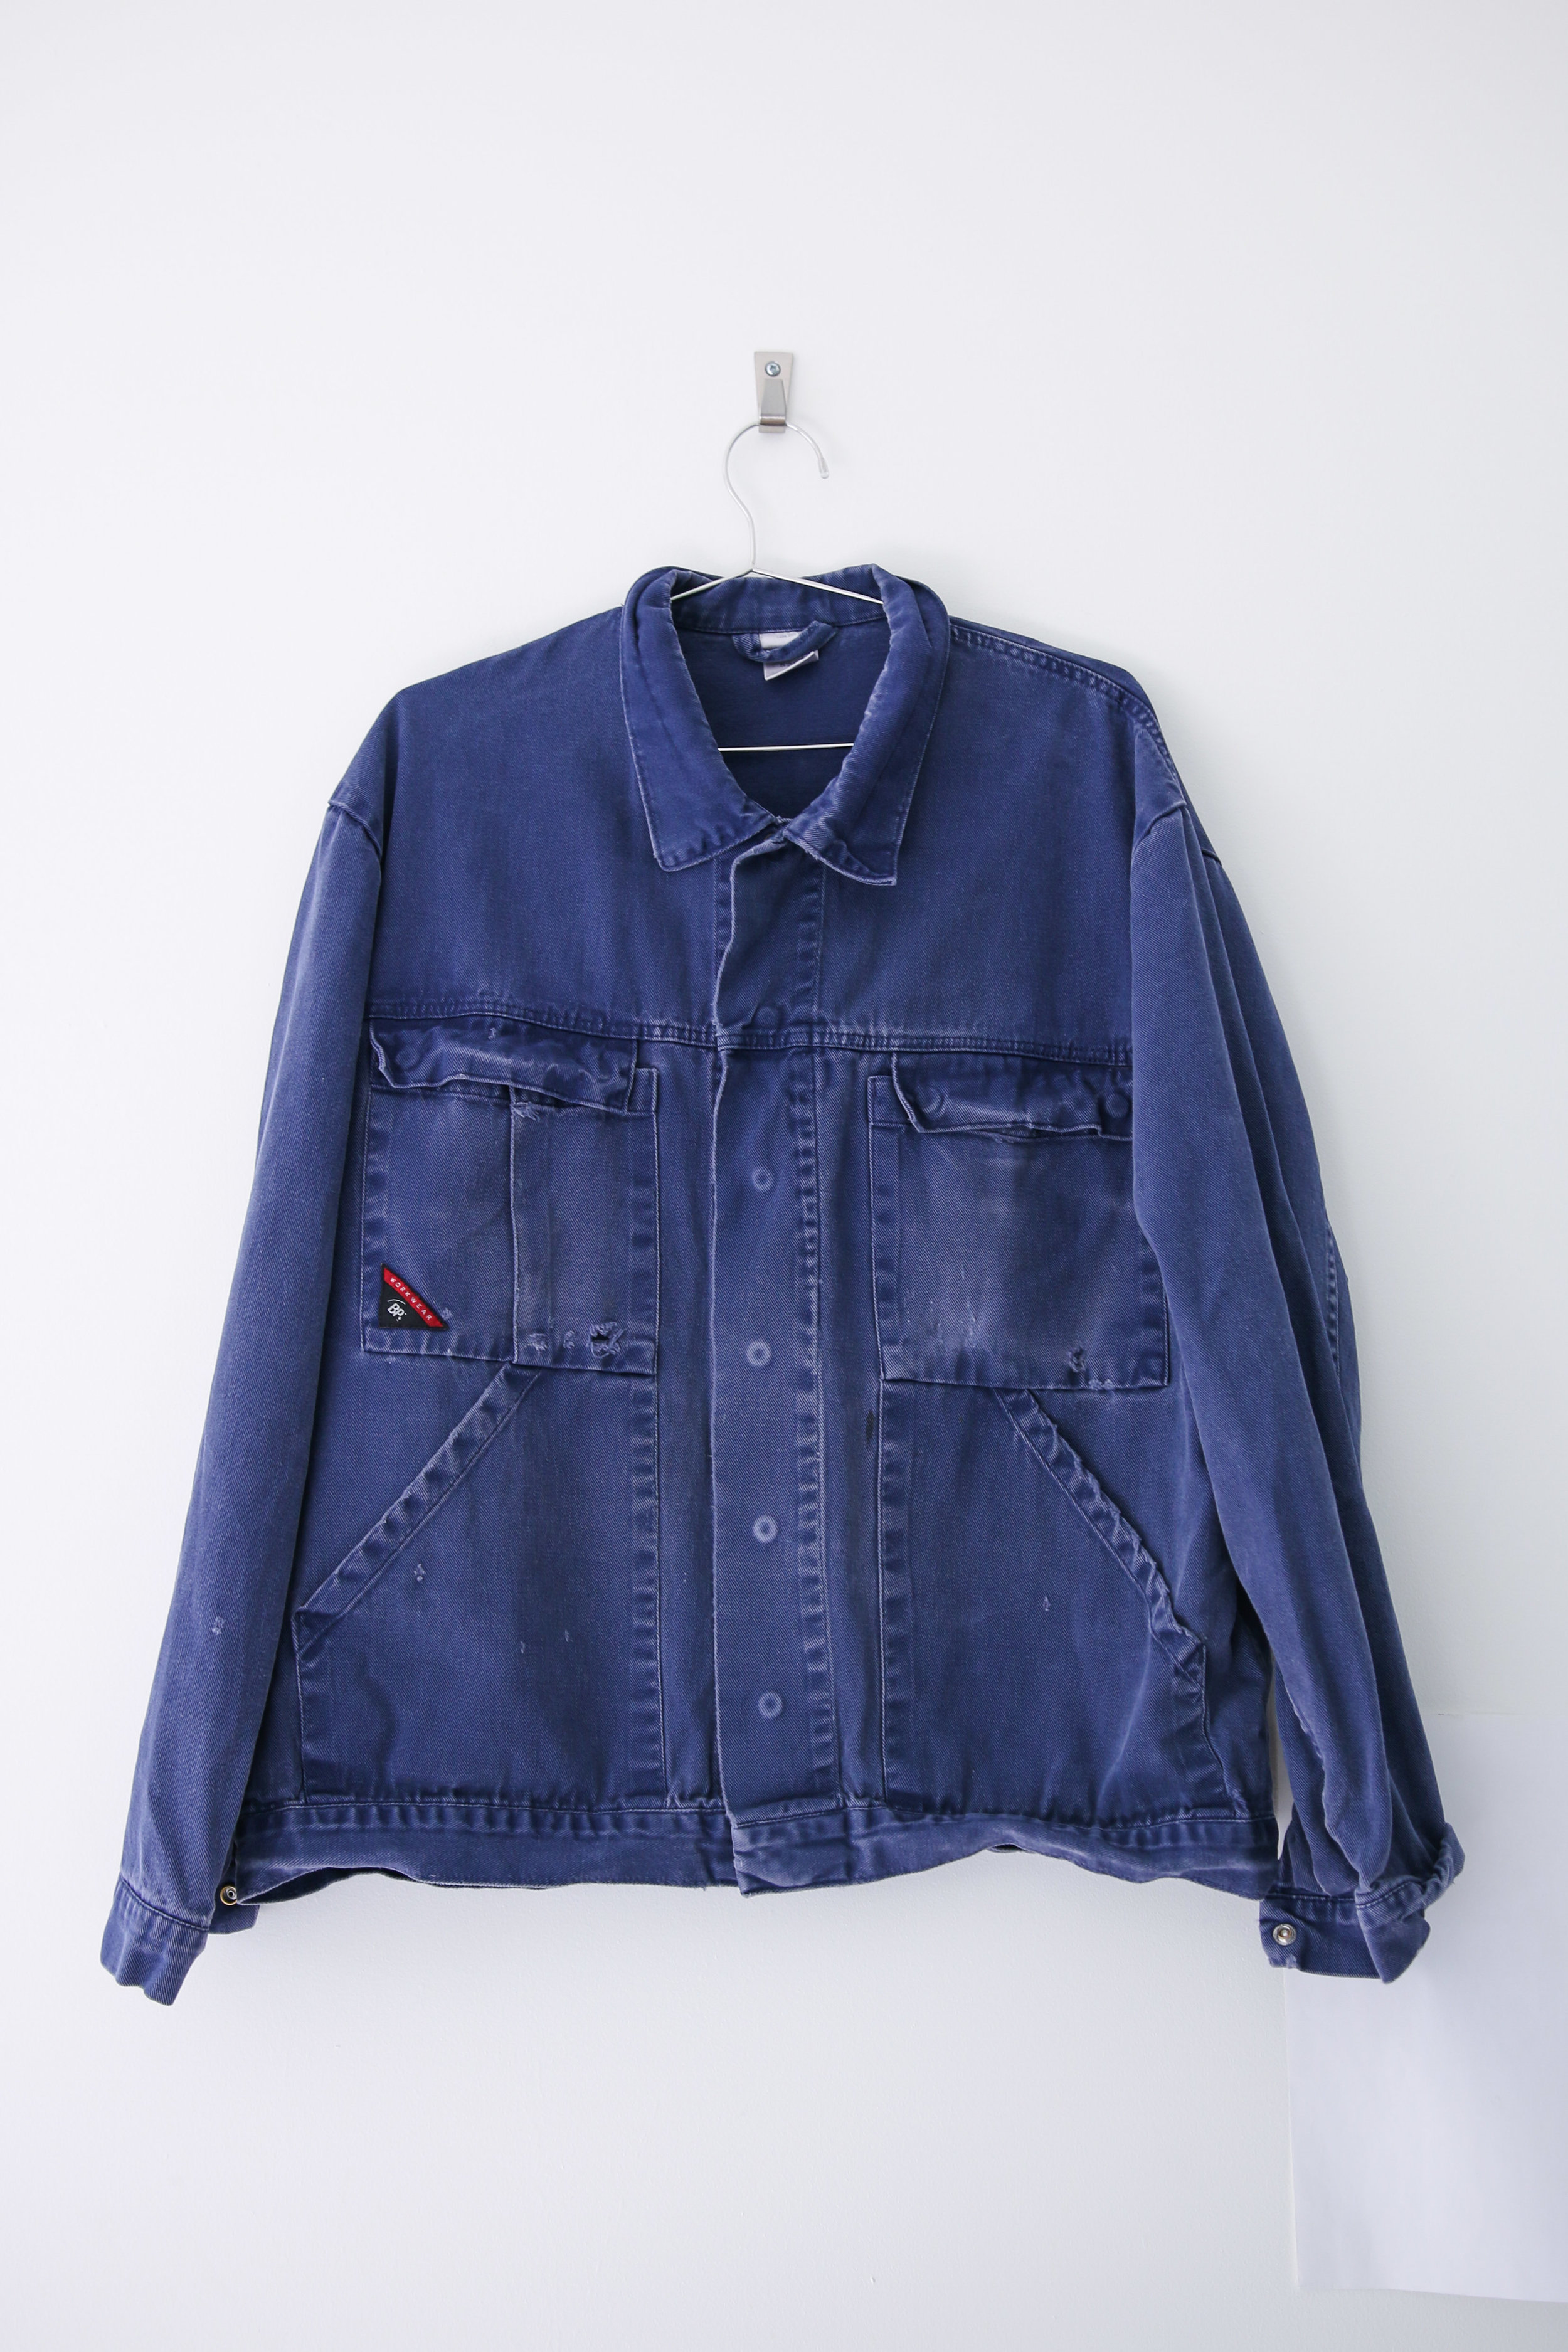 Vintage Jackets - Probably the one piece of clothing that is a bit forgiving when it comes to sizing. Plus… who won't love a unique vintage jacket?